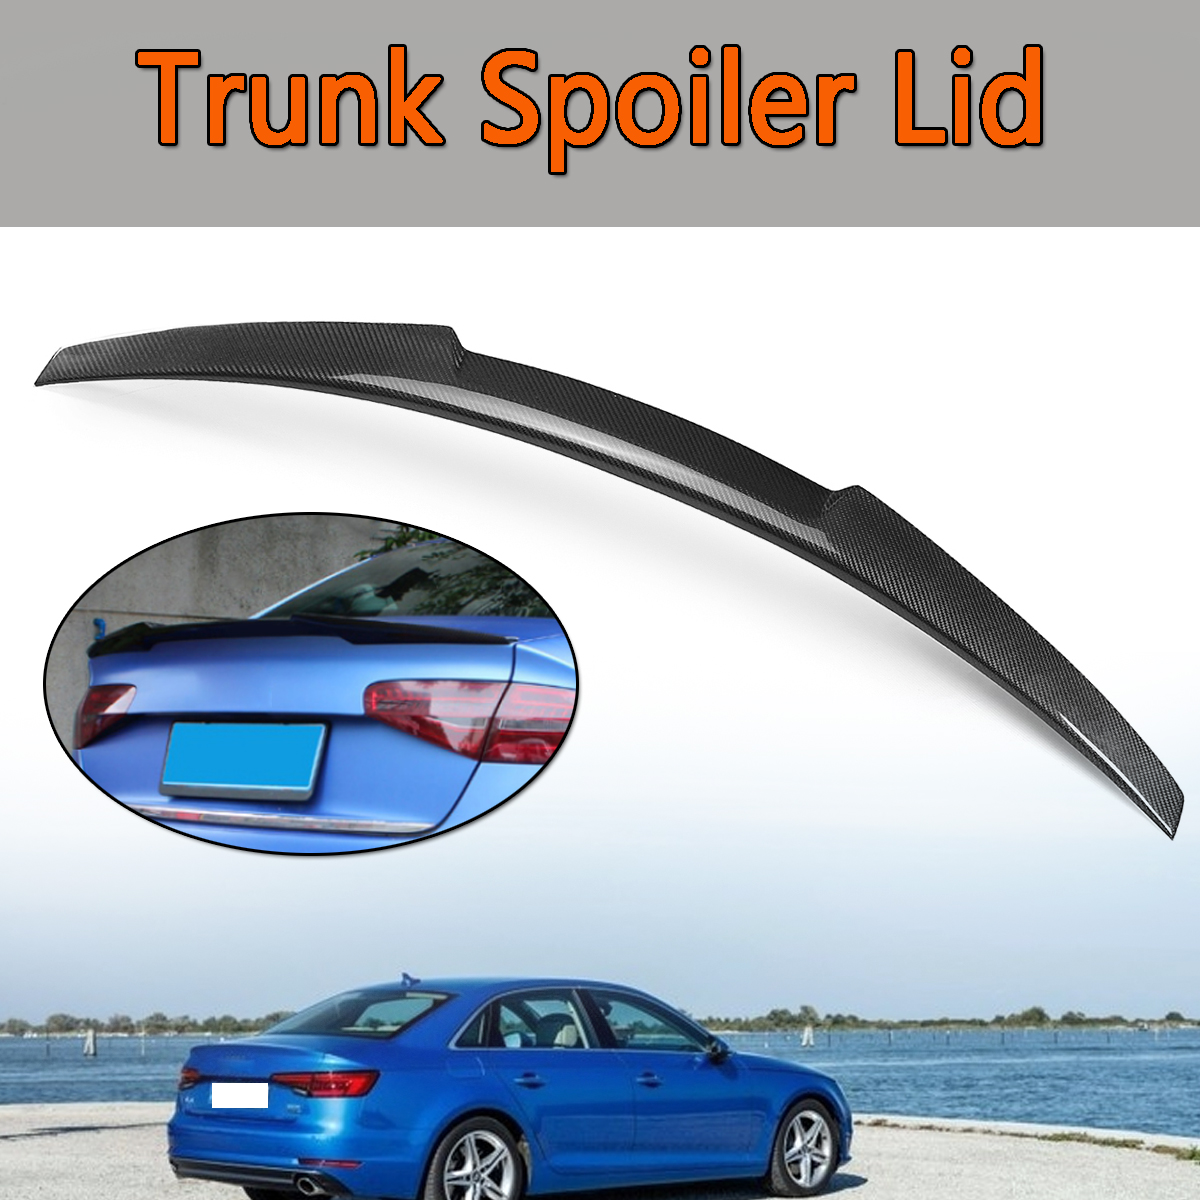 New Rear Trunk Boot Spoiler Wings Carbon Fiber Trunk Spoiler Lid Type D in car For 2017-2018 for Audi A4 B9 /Quattro/S4 Sedan carbon fiber for audi a4 b9 sedan avant allroad quattro 2016 2017 transmission shift gear panel molding garnish cover trim